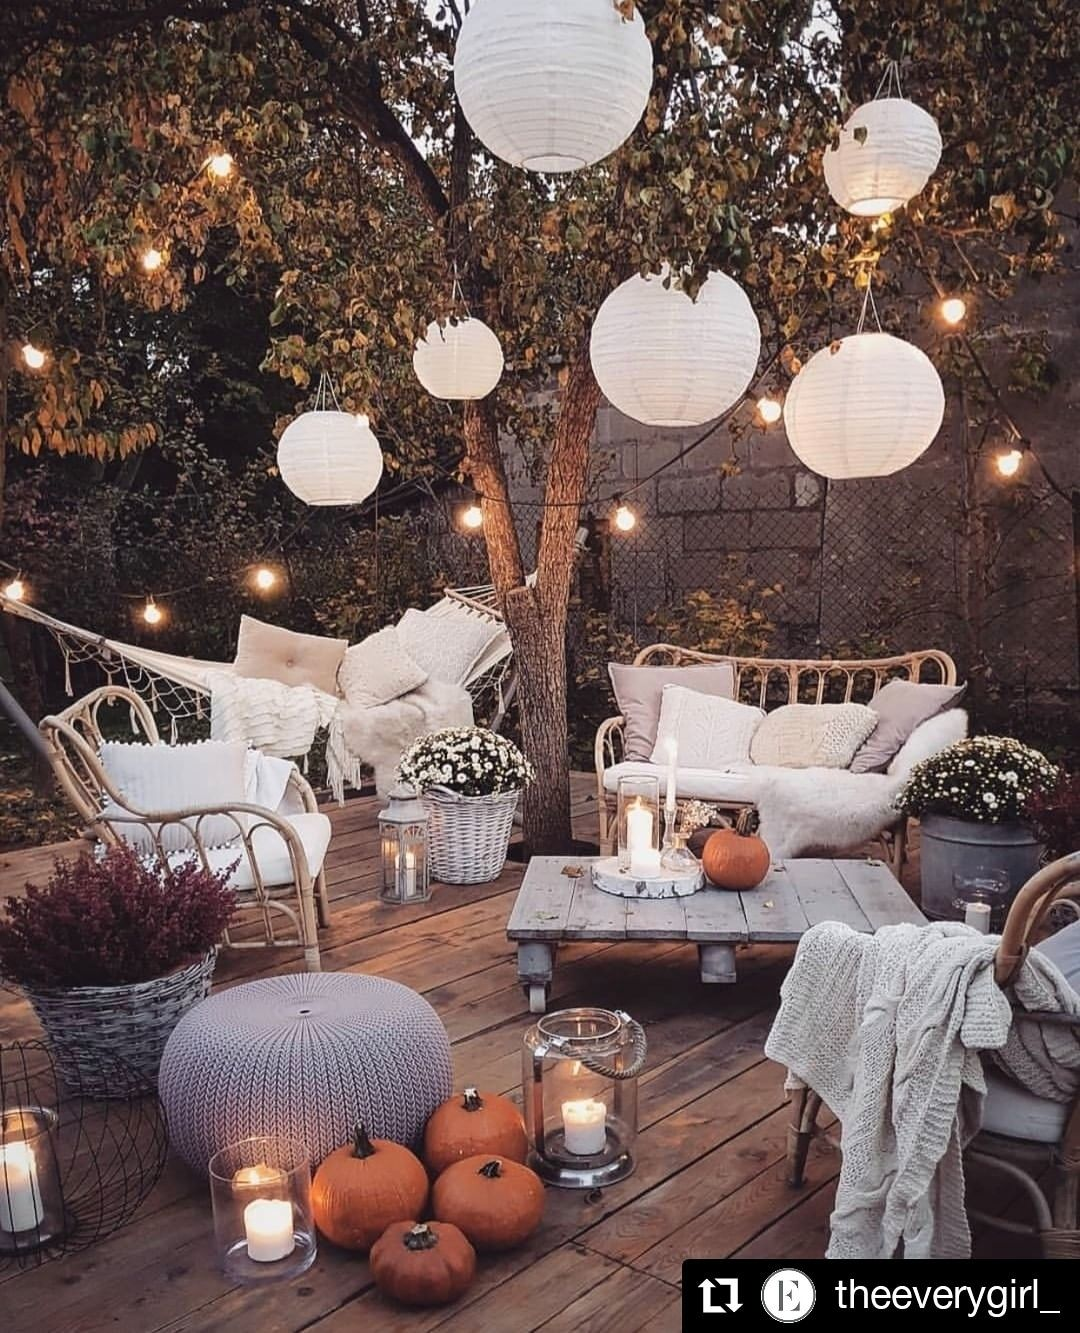 7 Affordable Landscaping Ideas For Under 1 000: Loving This Outdoor Decor Inspo From The @theeverygirl